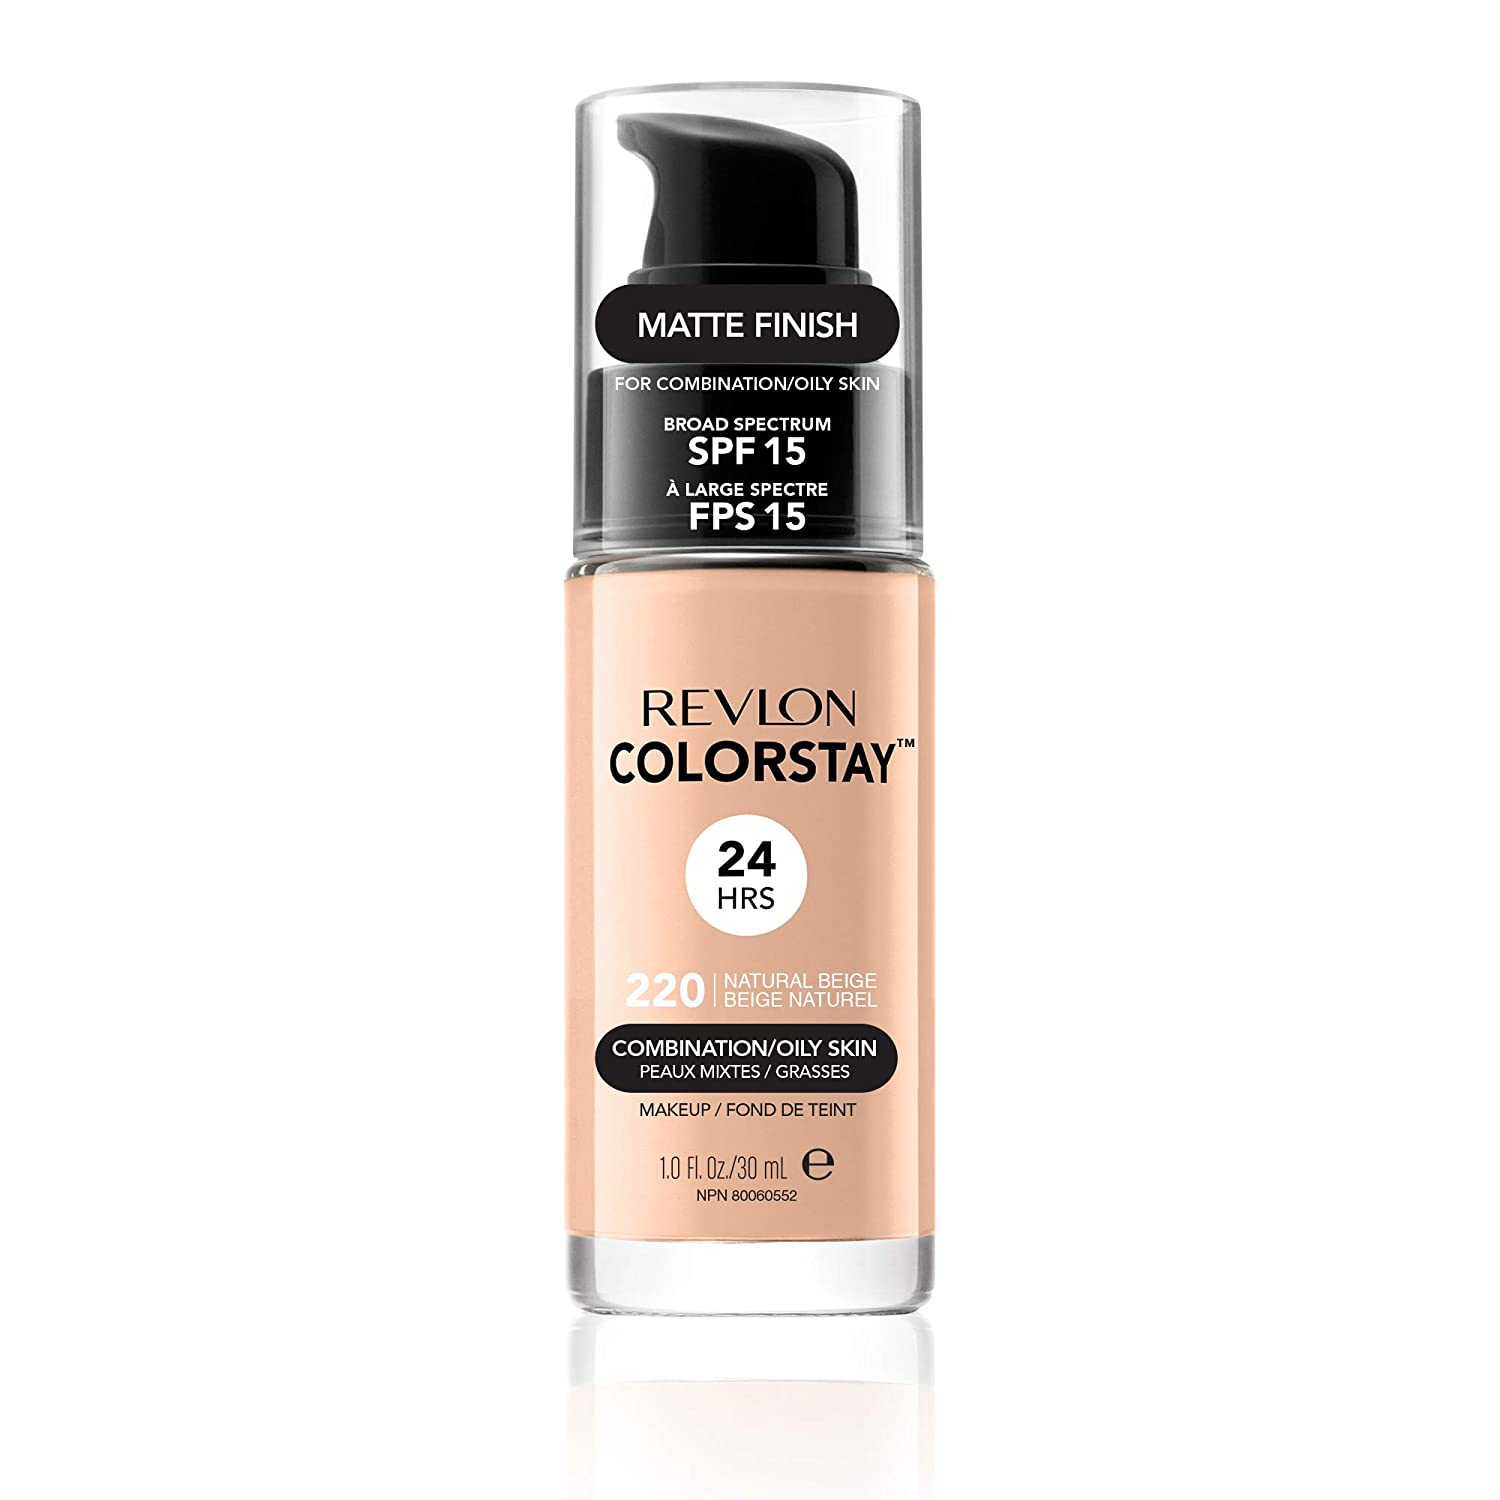 Revlon ColorStay Makeup Foundation for Combination/Oily Skin - 30 ml, Natural Beige: Amazon.co.uk: Beauty